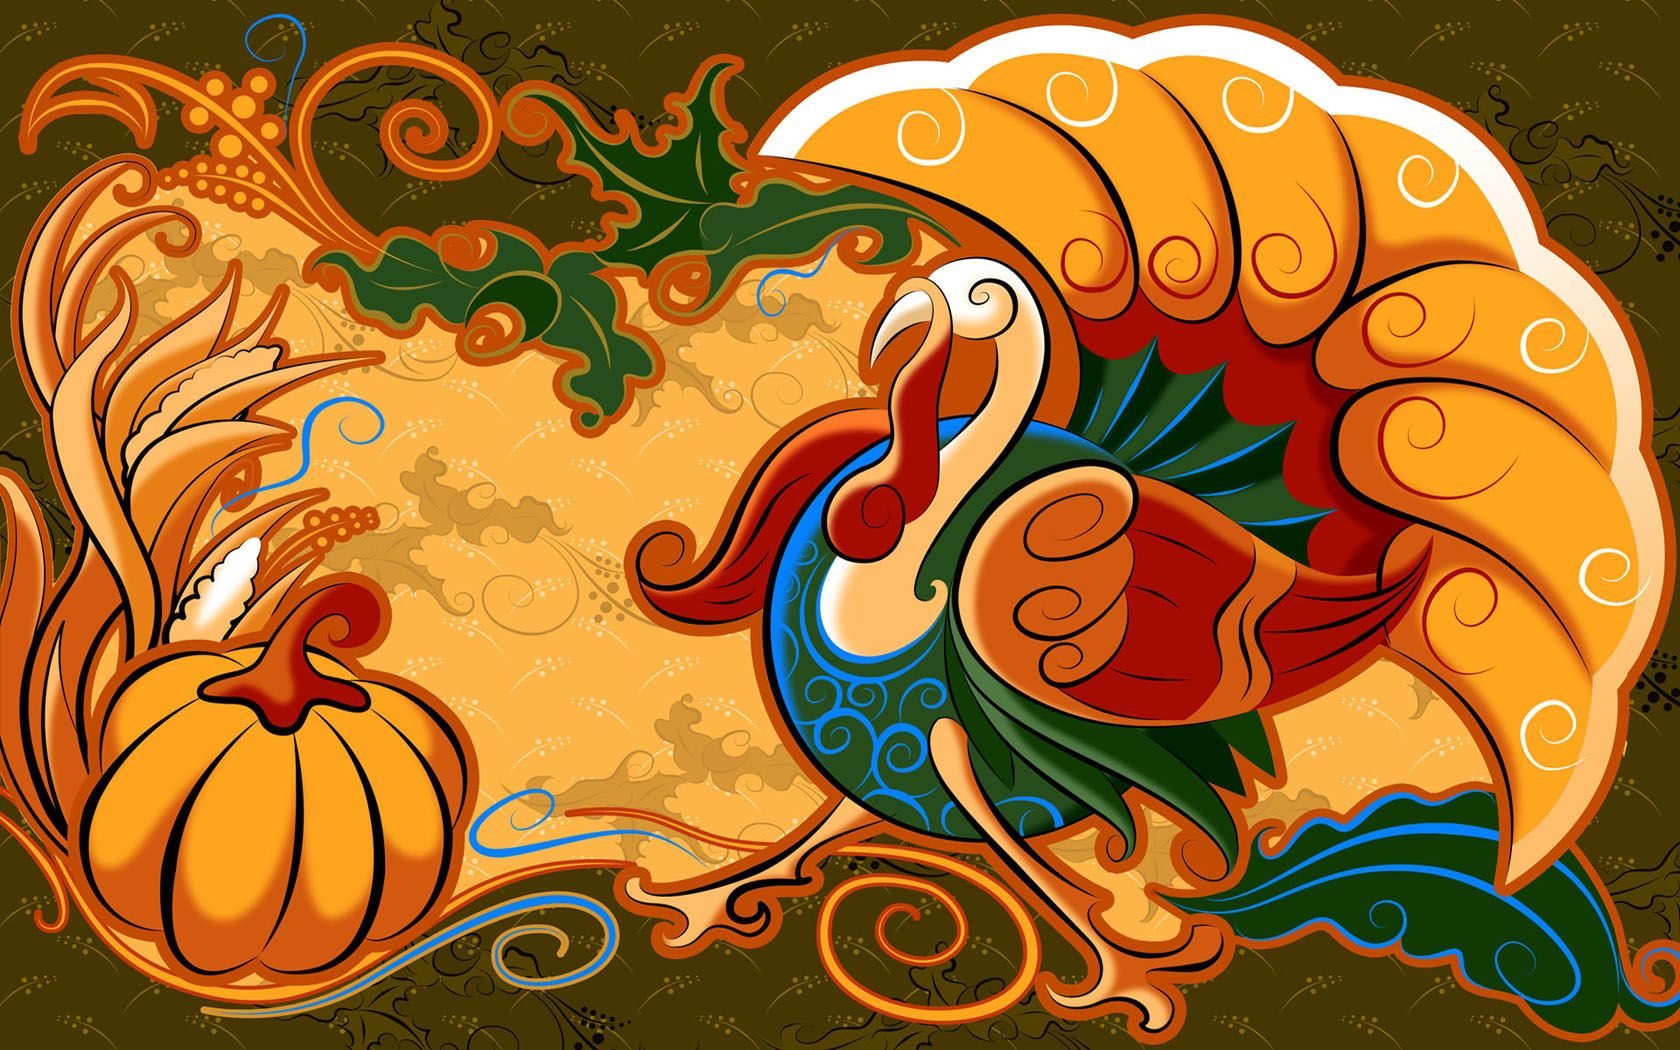 20 Best Happy Thanksgiving Day Wallpapers High Quality Blazomania Thanksgiving Art Happy Thanksgiving Wallpaper Thanksgiving Images